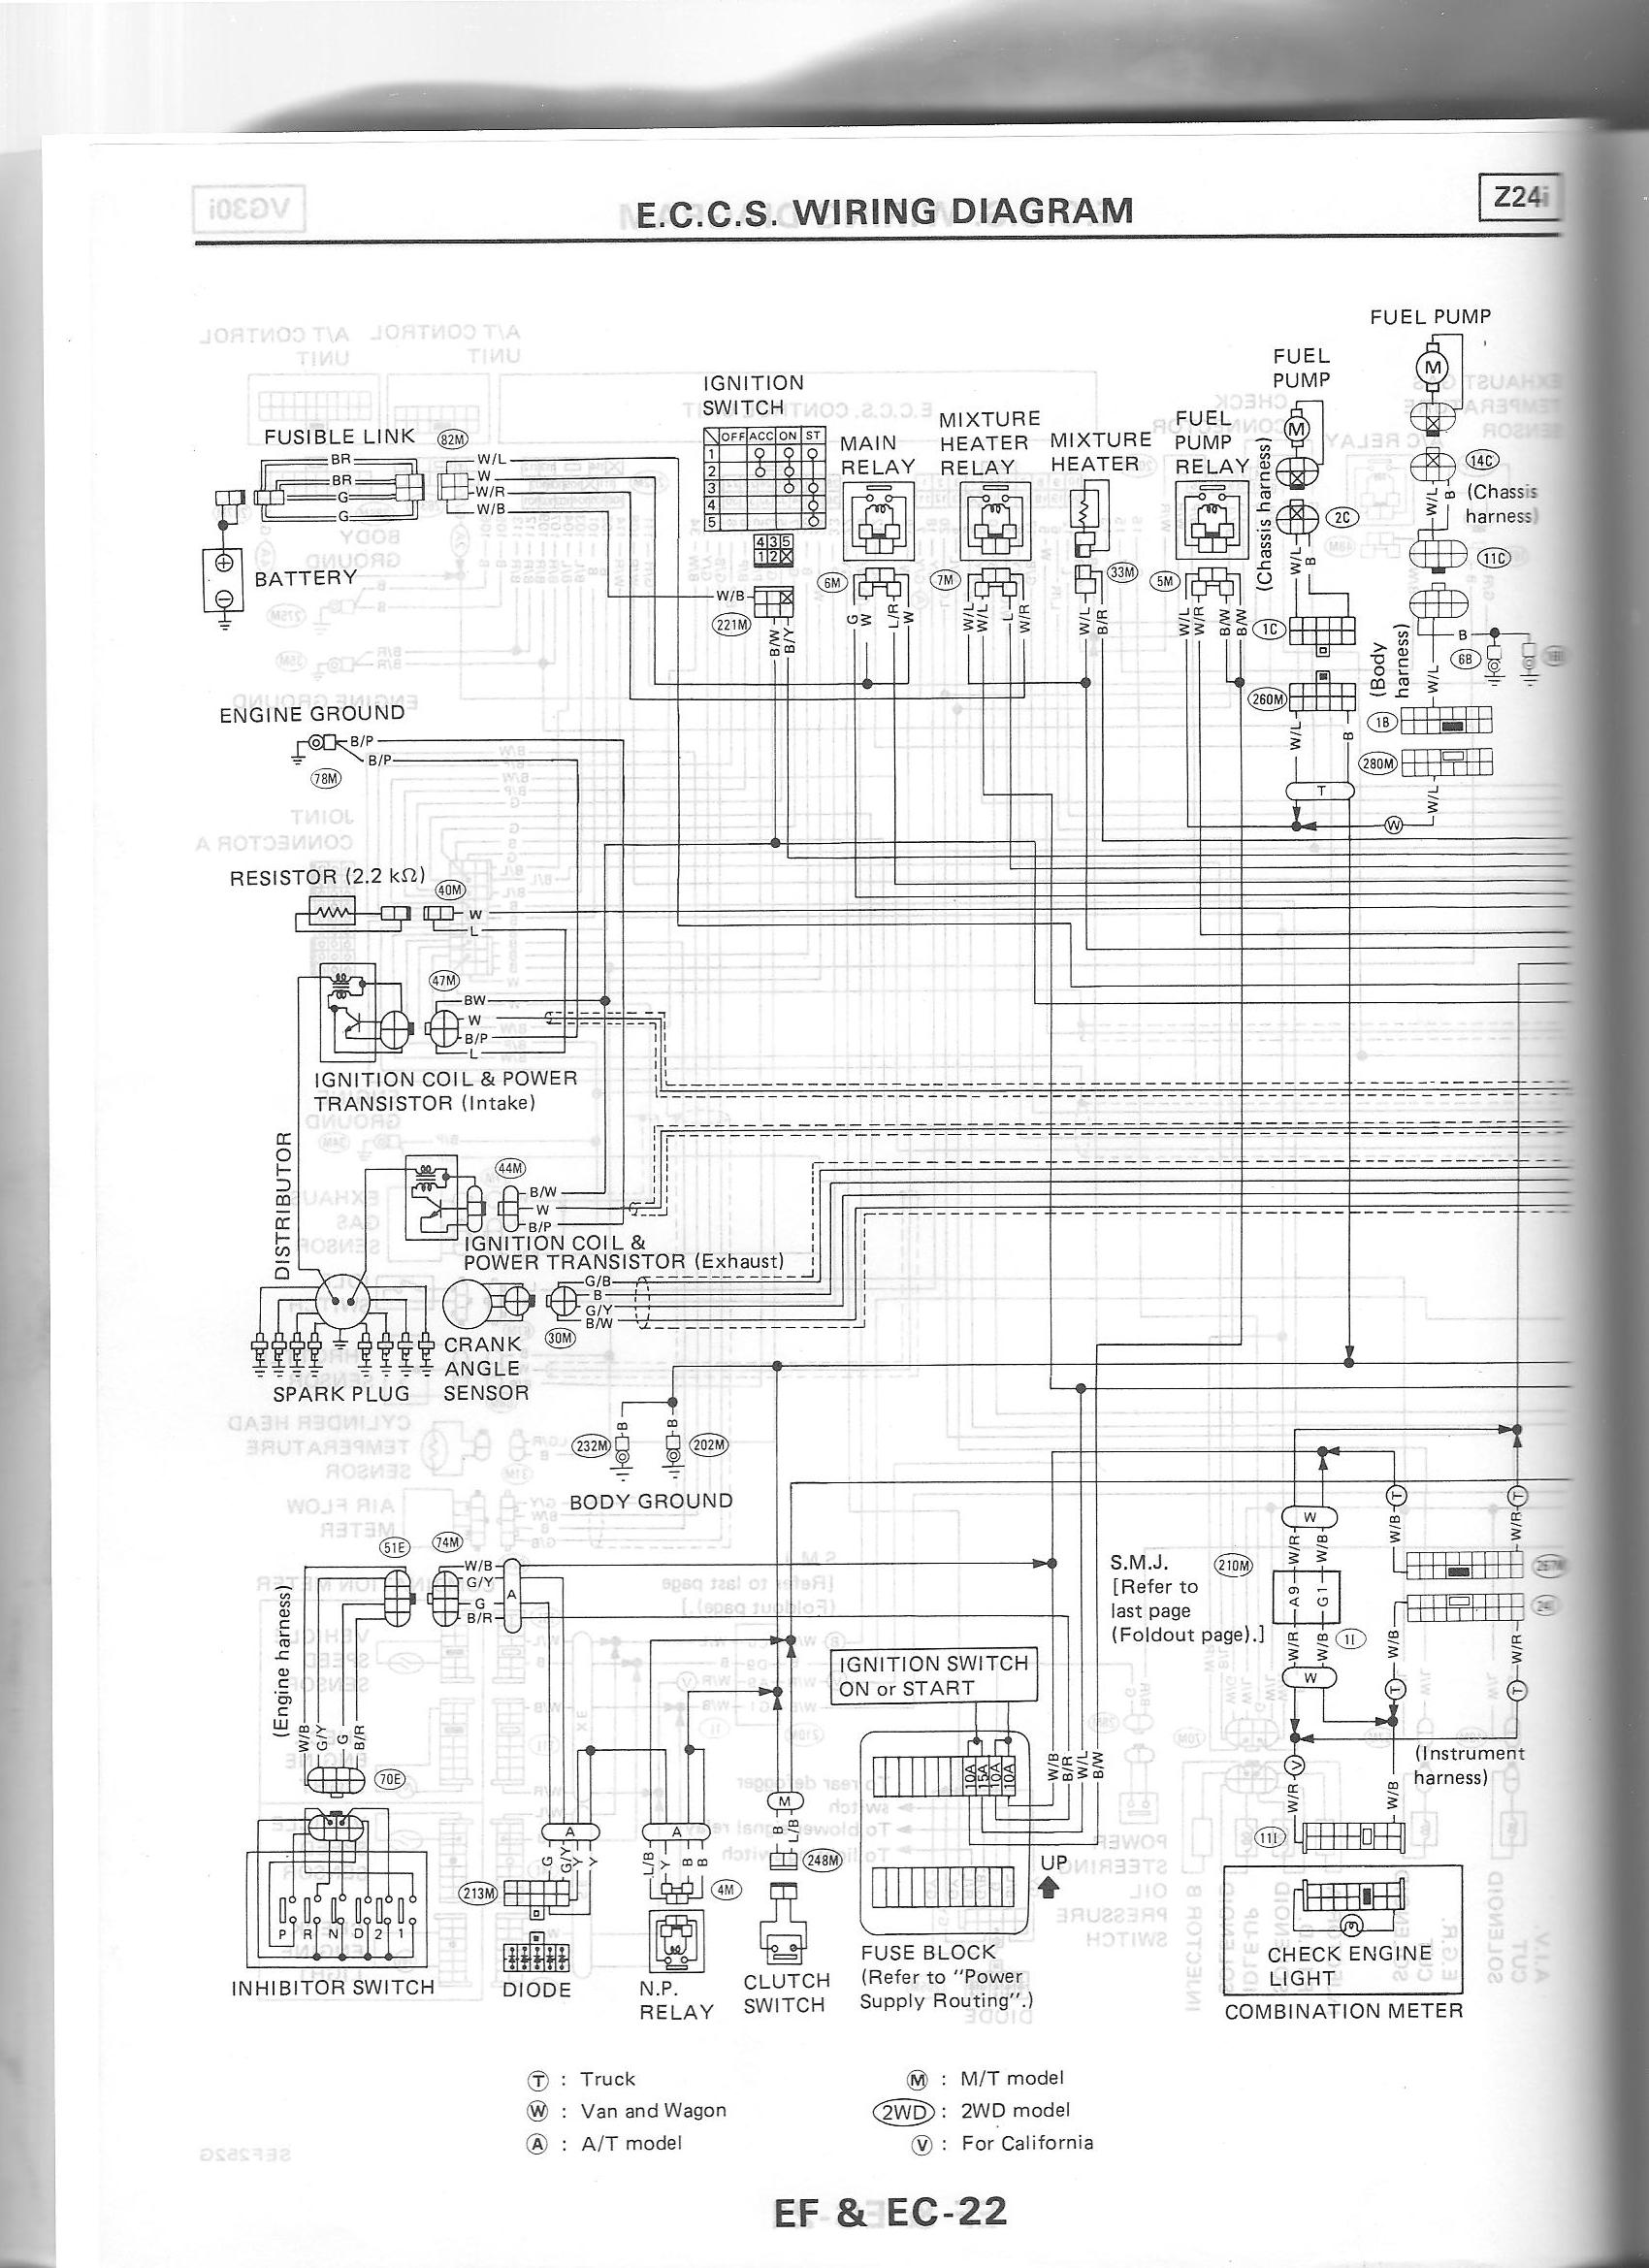 wiring1_88 nissan nut nissan d21 fuel pump wiring diagram at fashall.co